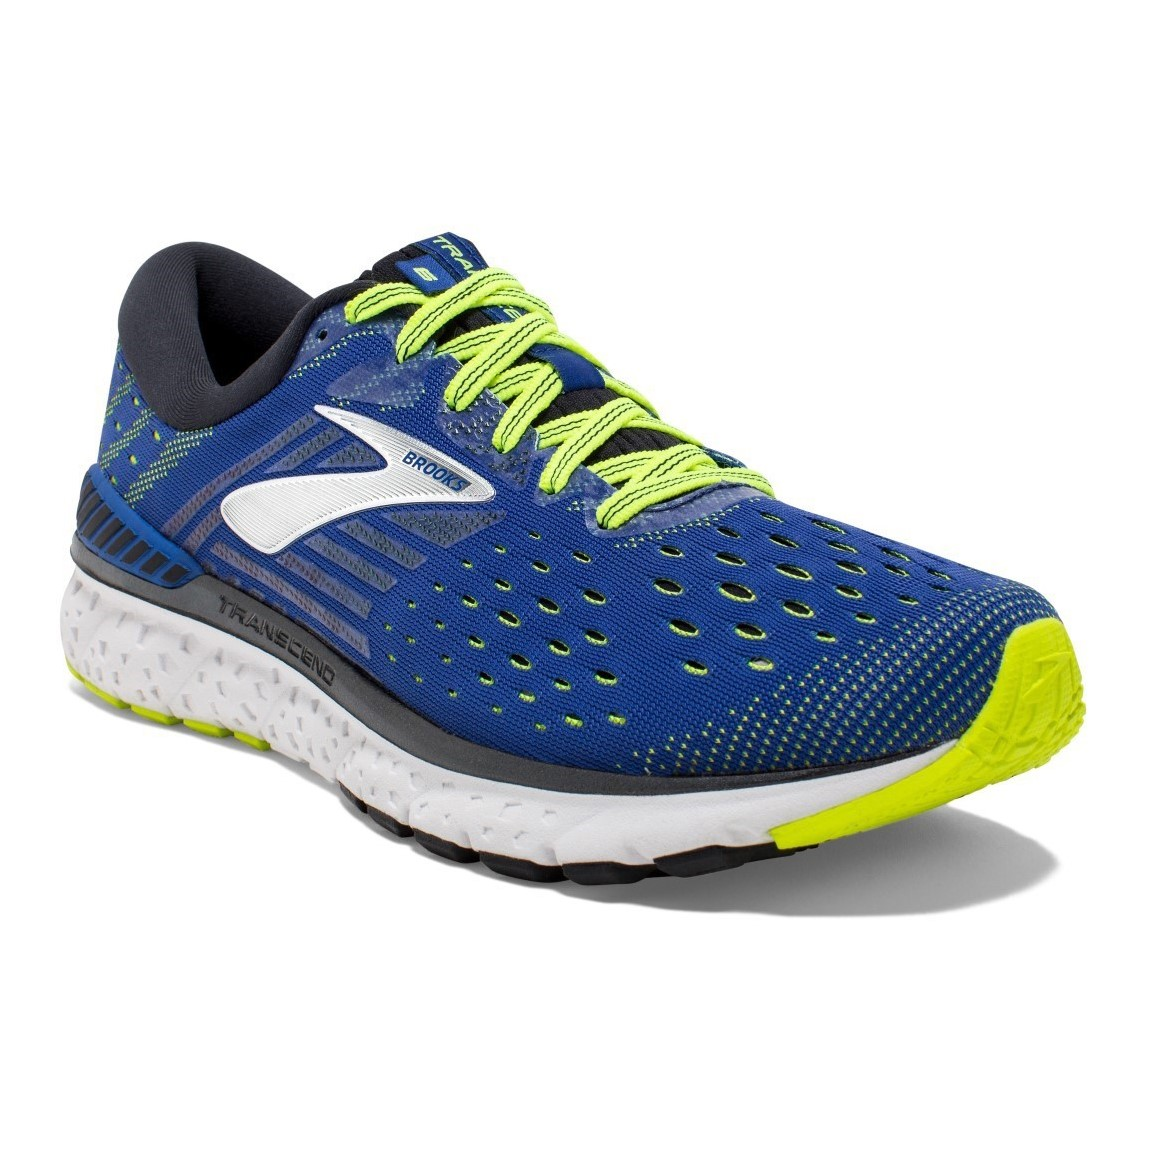 d9a4a61b4ed Brooks Transcend 6 - Mens Running Shoes - Blue Black Nightlife ...